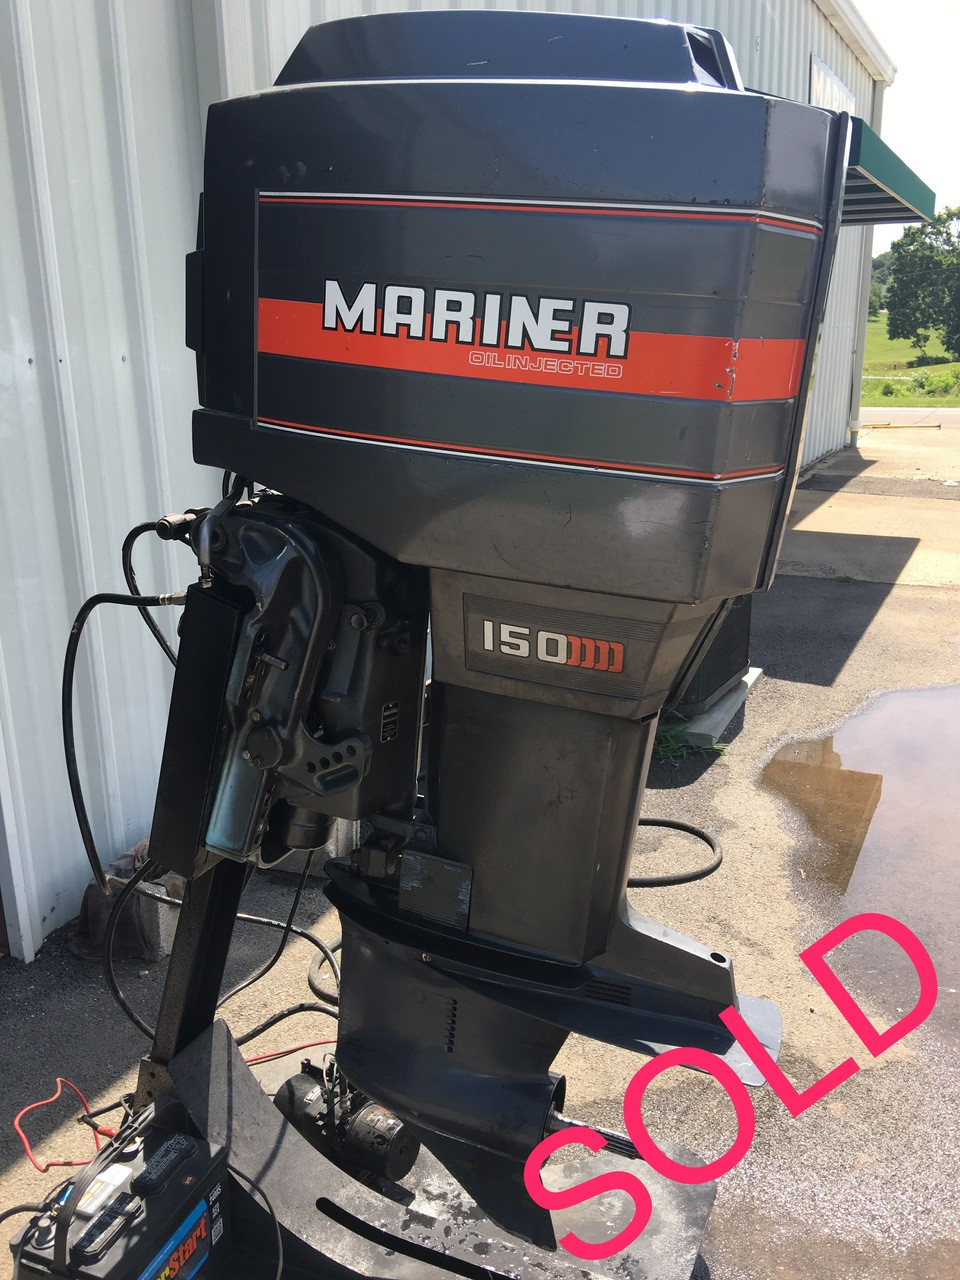 what year is my outboard mariner